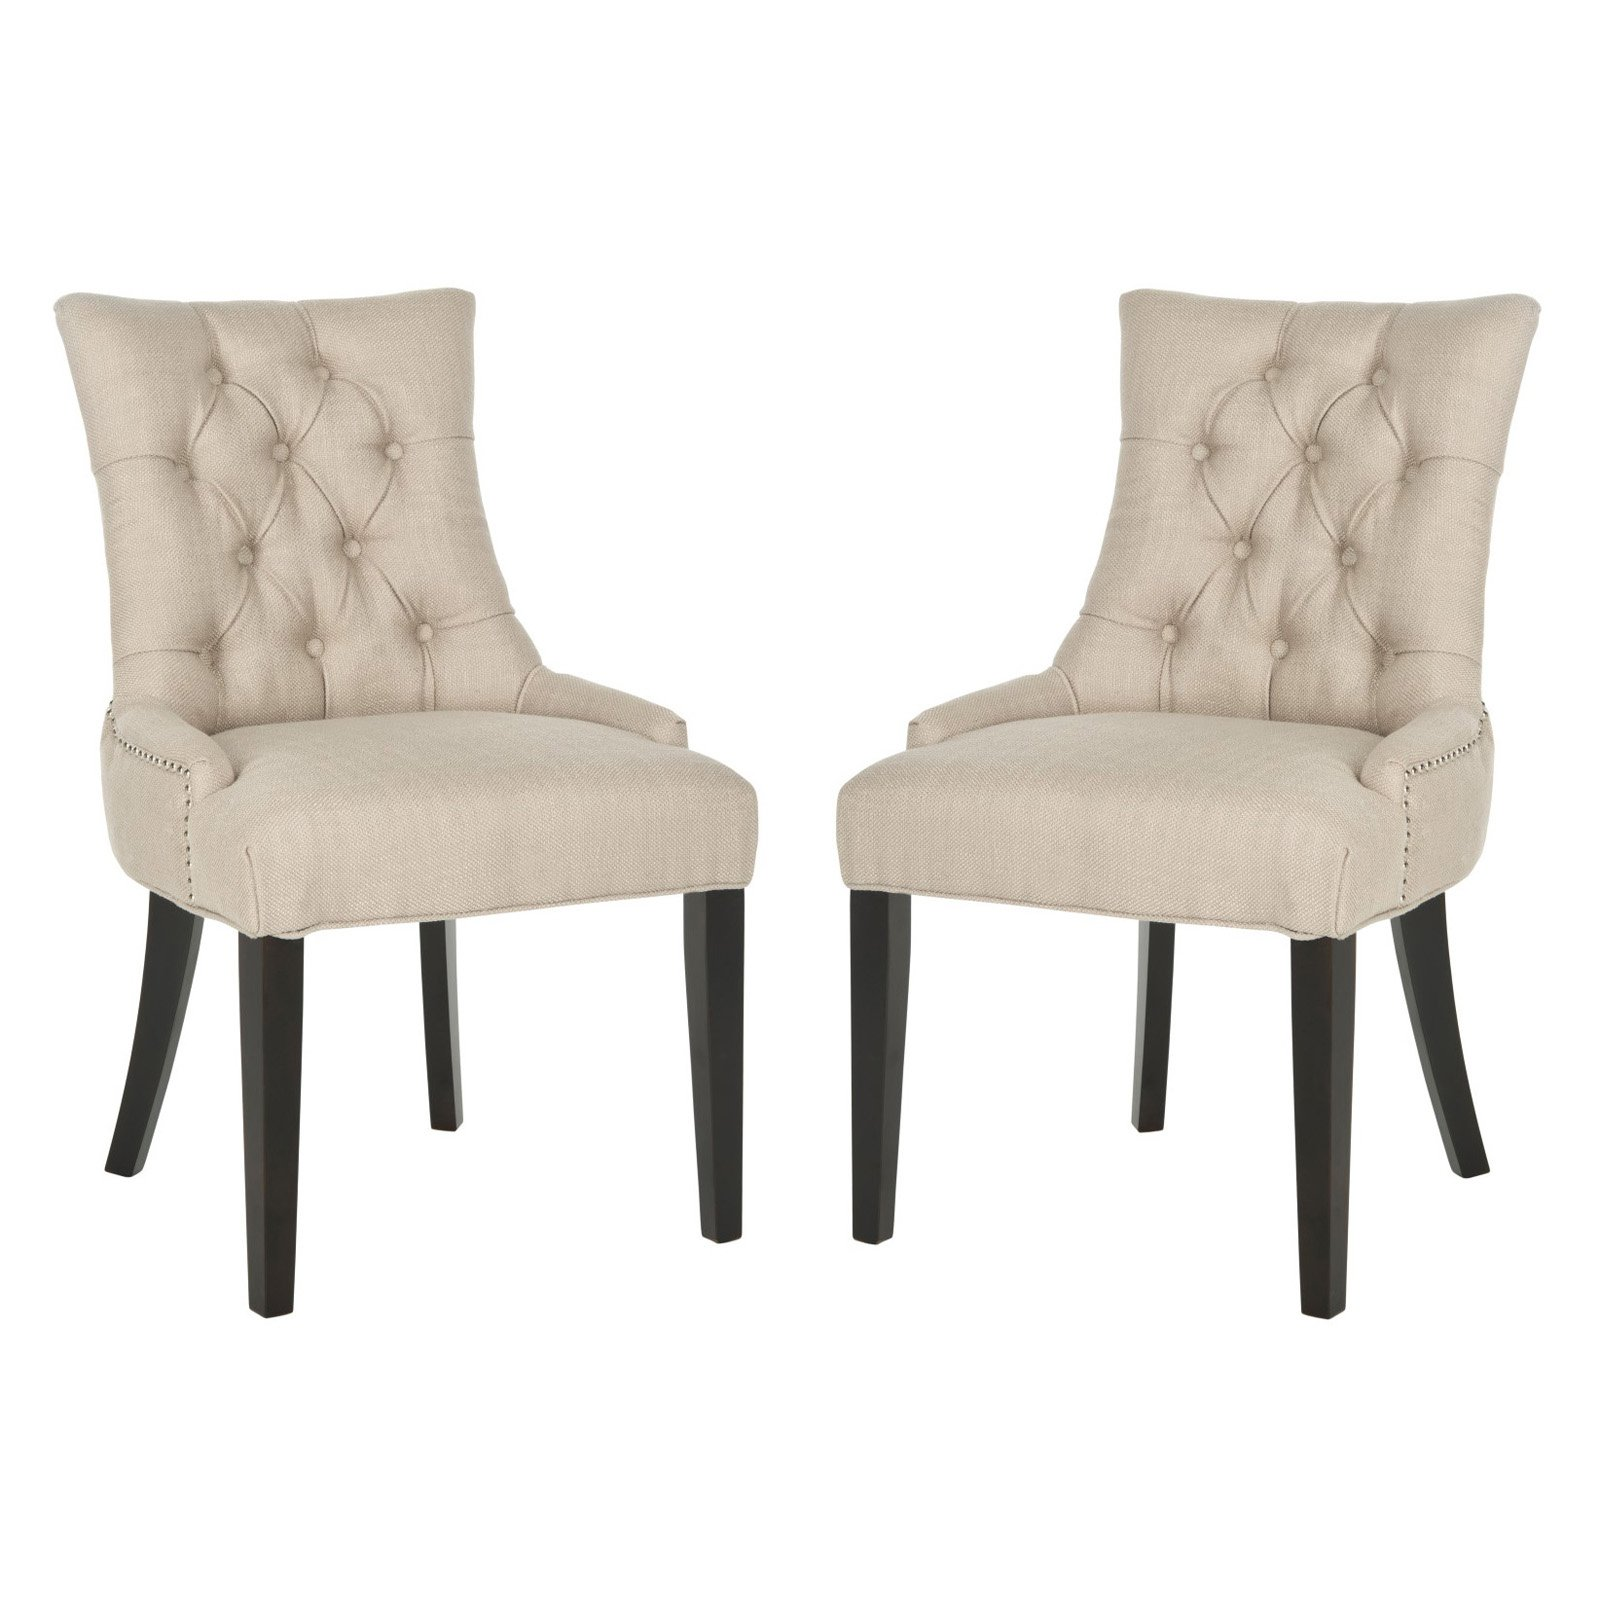 Safavieh Ashley Side Chairs, Set of 2 by Safavieh